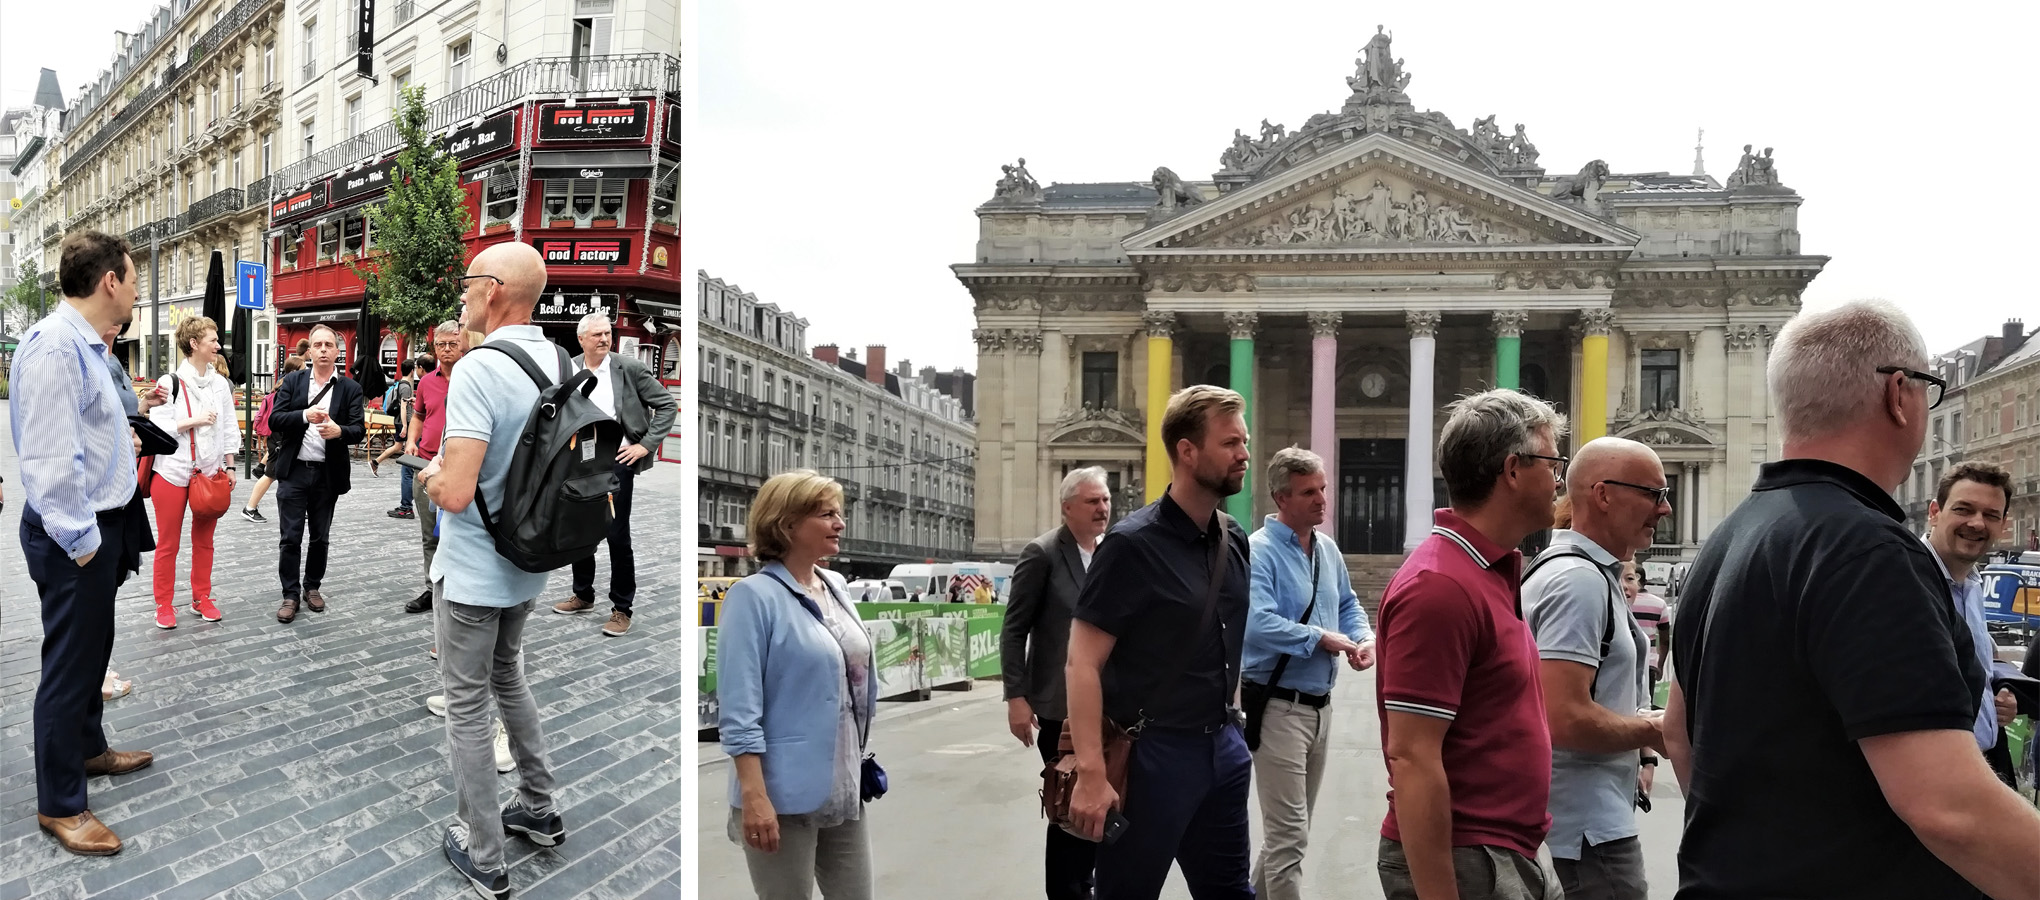 The members of the Norwegian delegation listen attentively to their guide and after, walk past the Stock Exchange, in Brussels